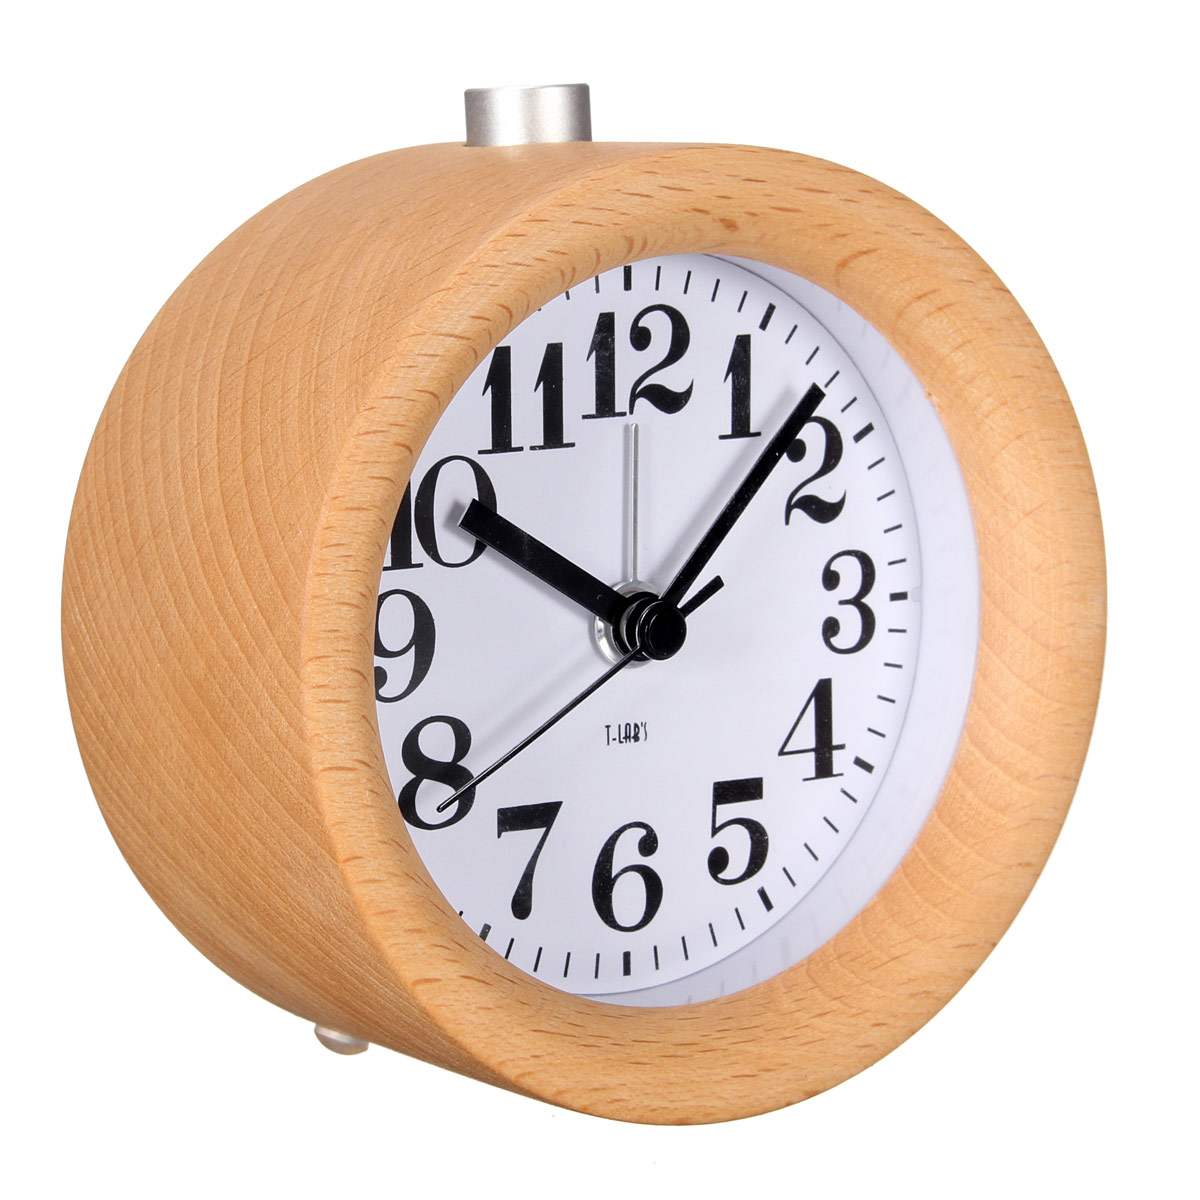 Beech Wood Alarm Clock Noctilucence Mute Creative Solid Wood Alarm Clock